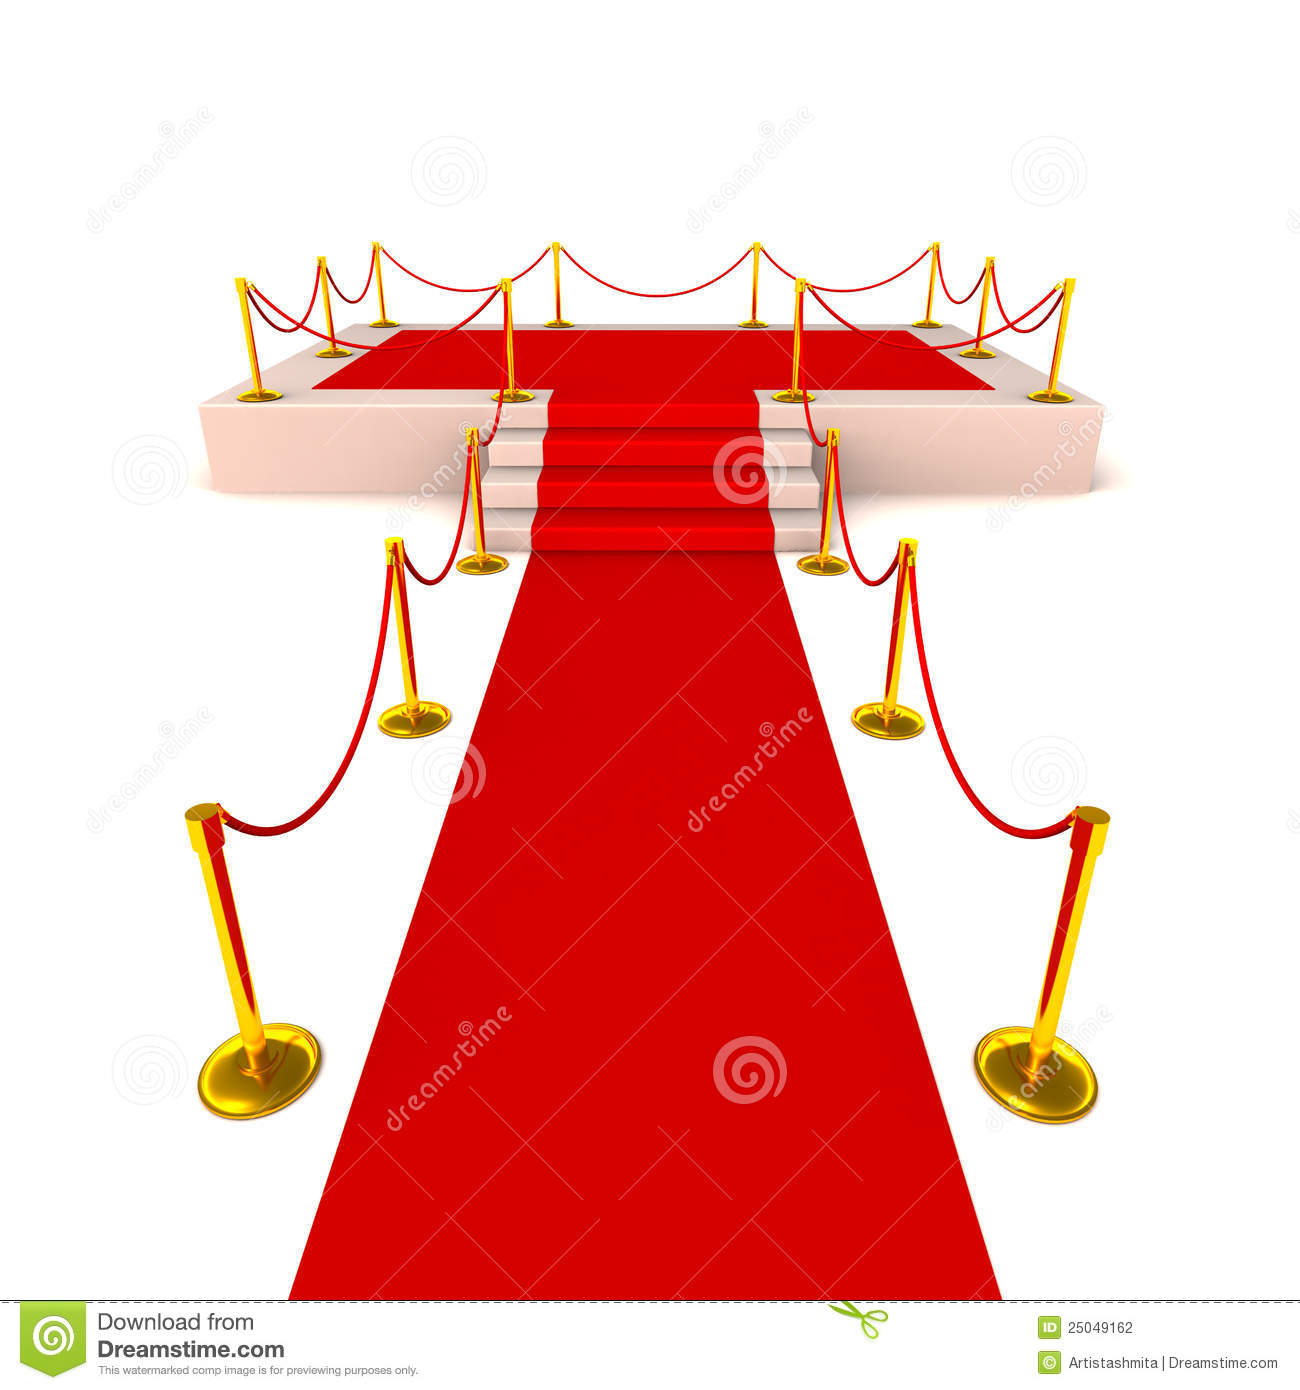 Red velvet curtains stage - Red Carpet Welcome Showing A Red Carpet Leading To A Stage With